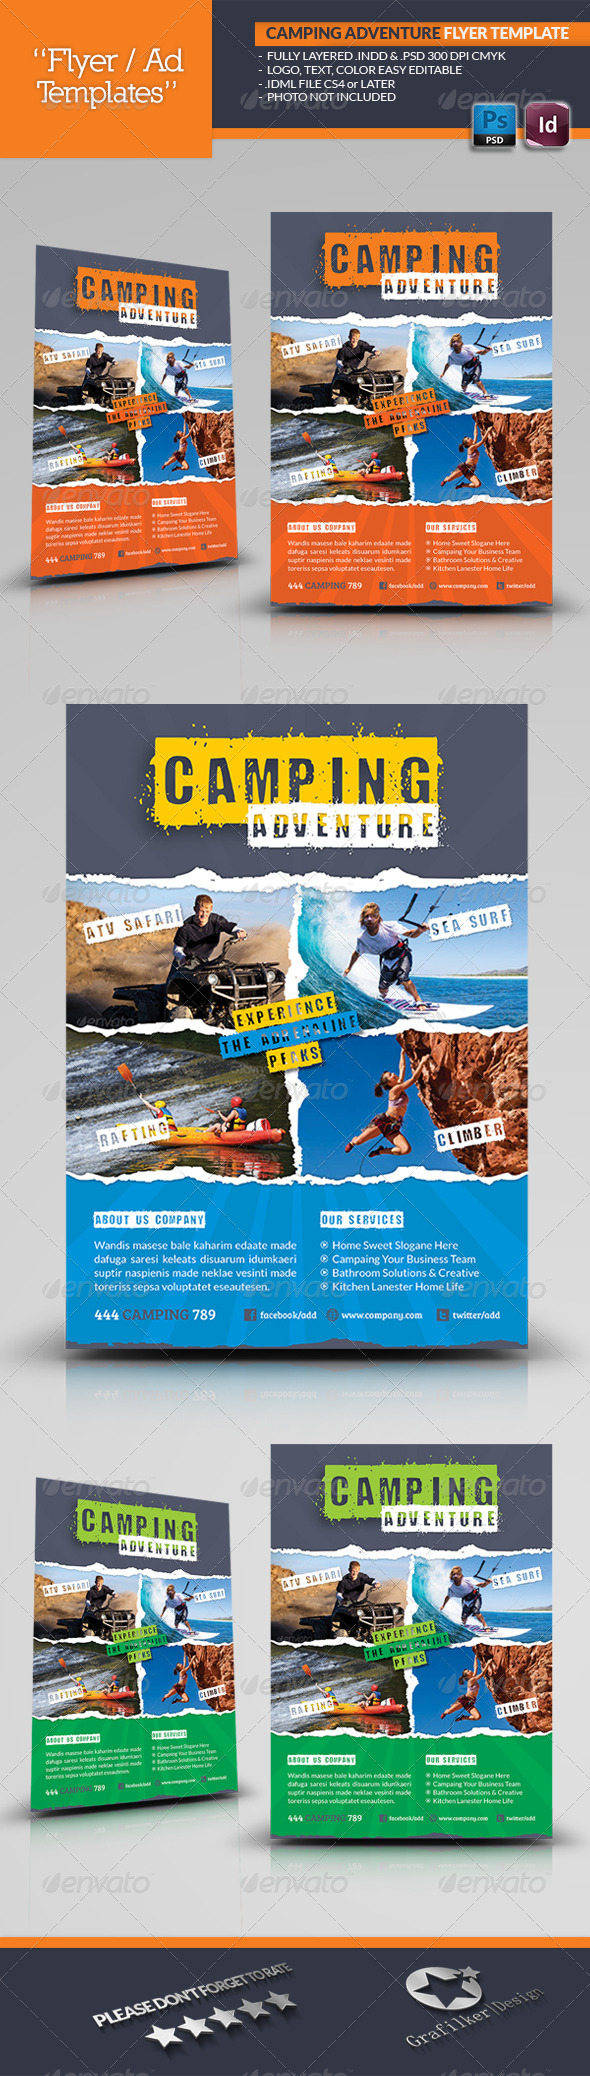 Camping Adventure Flyer Template - Corporate Flyers